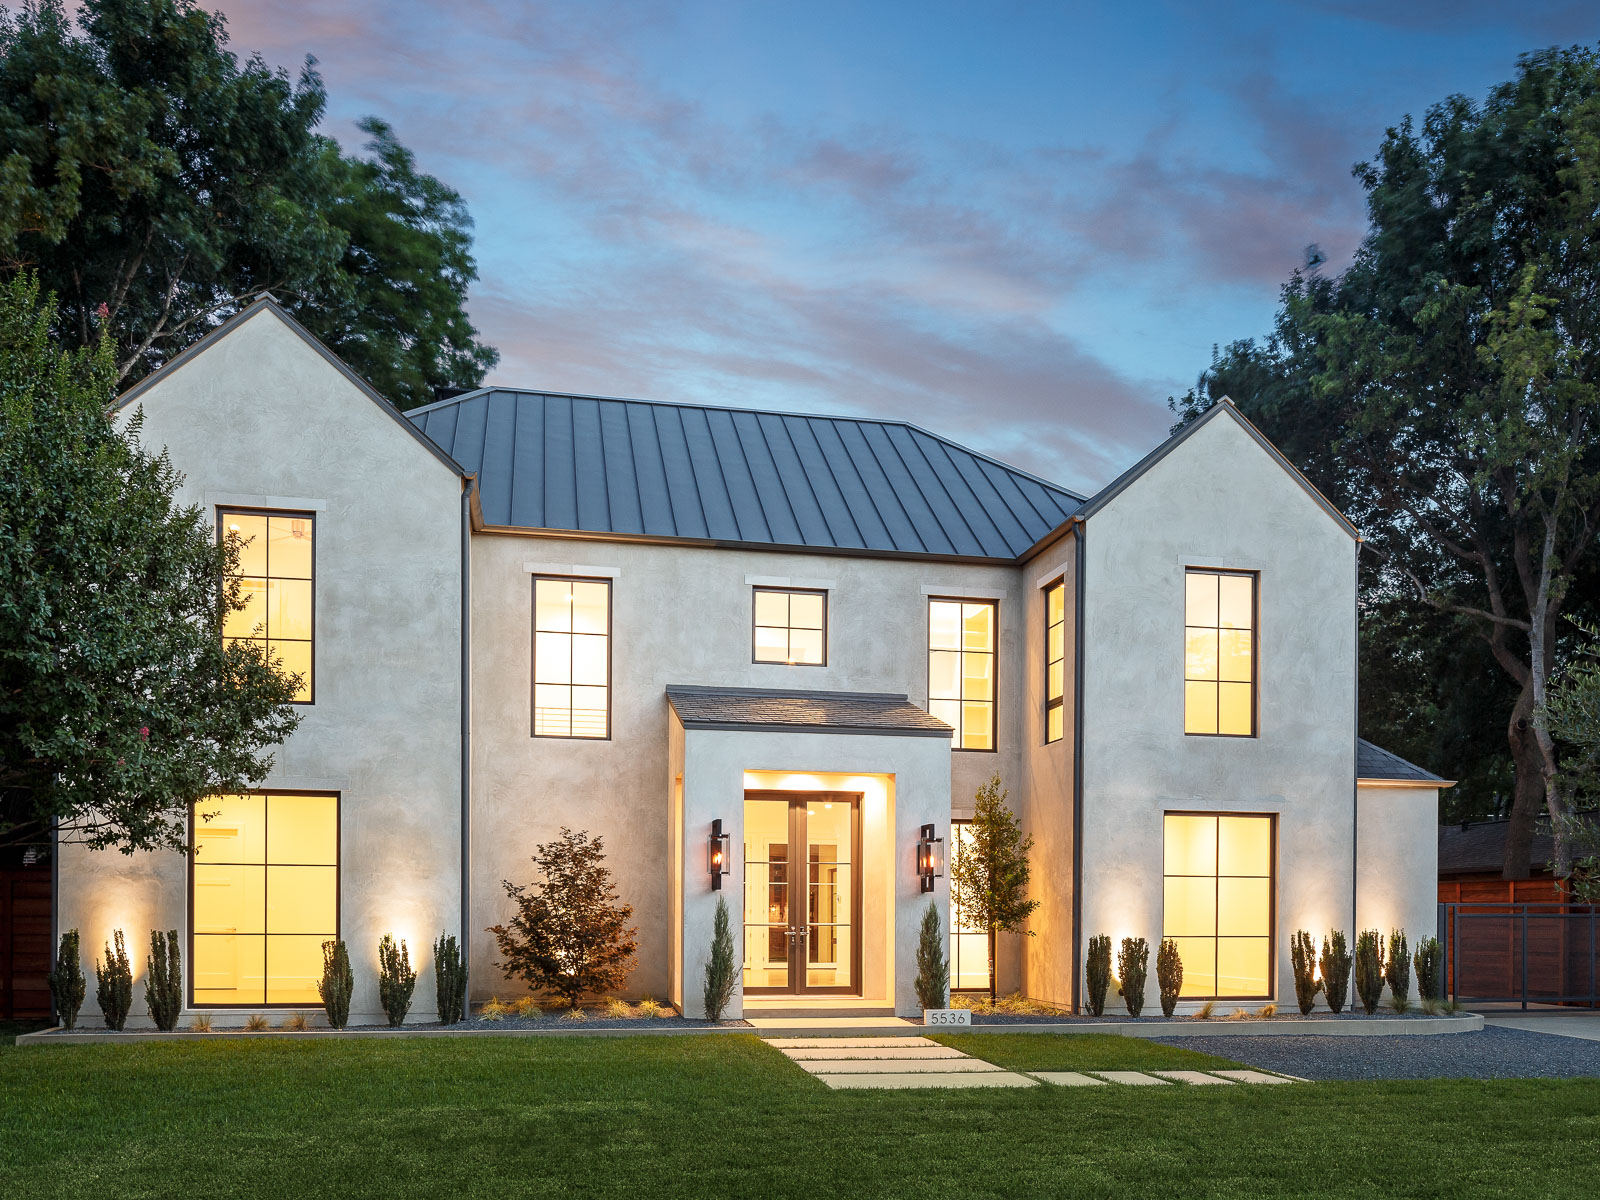 Single Family Home for Sale at Stunning New Construction in Devonshire 5536 Greenbrier Drive Dallas, Texas 75209 United States